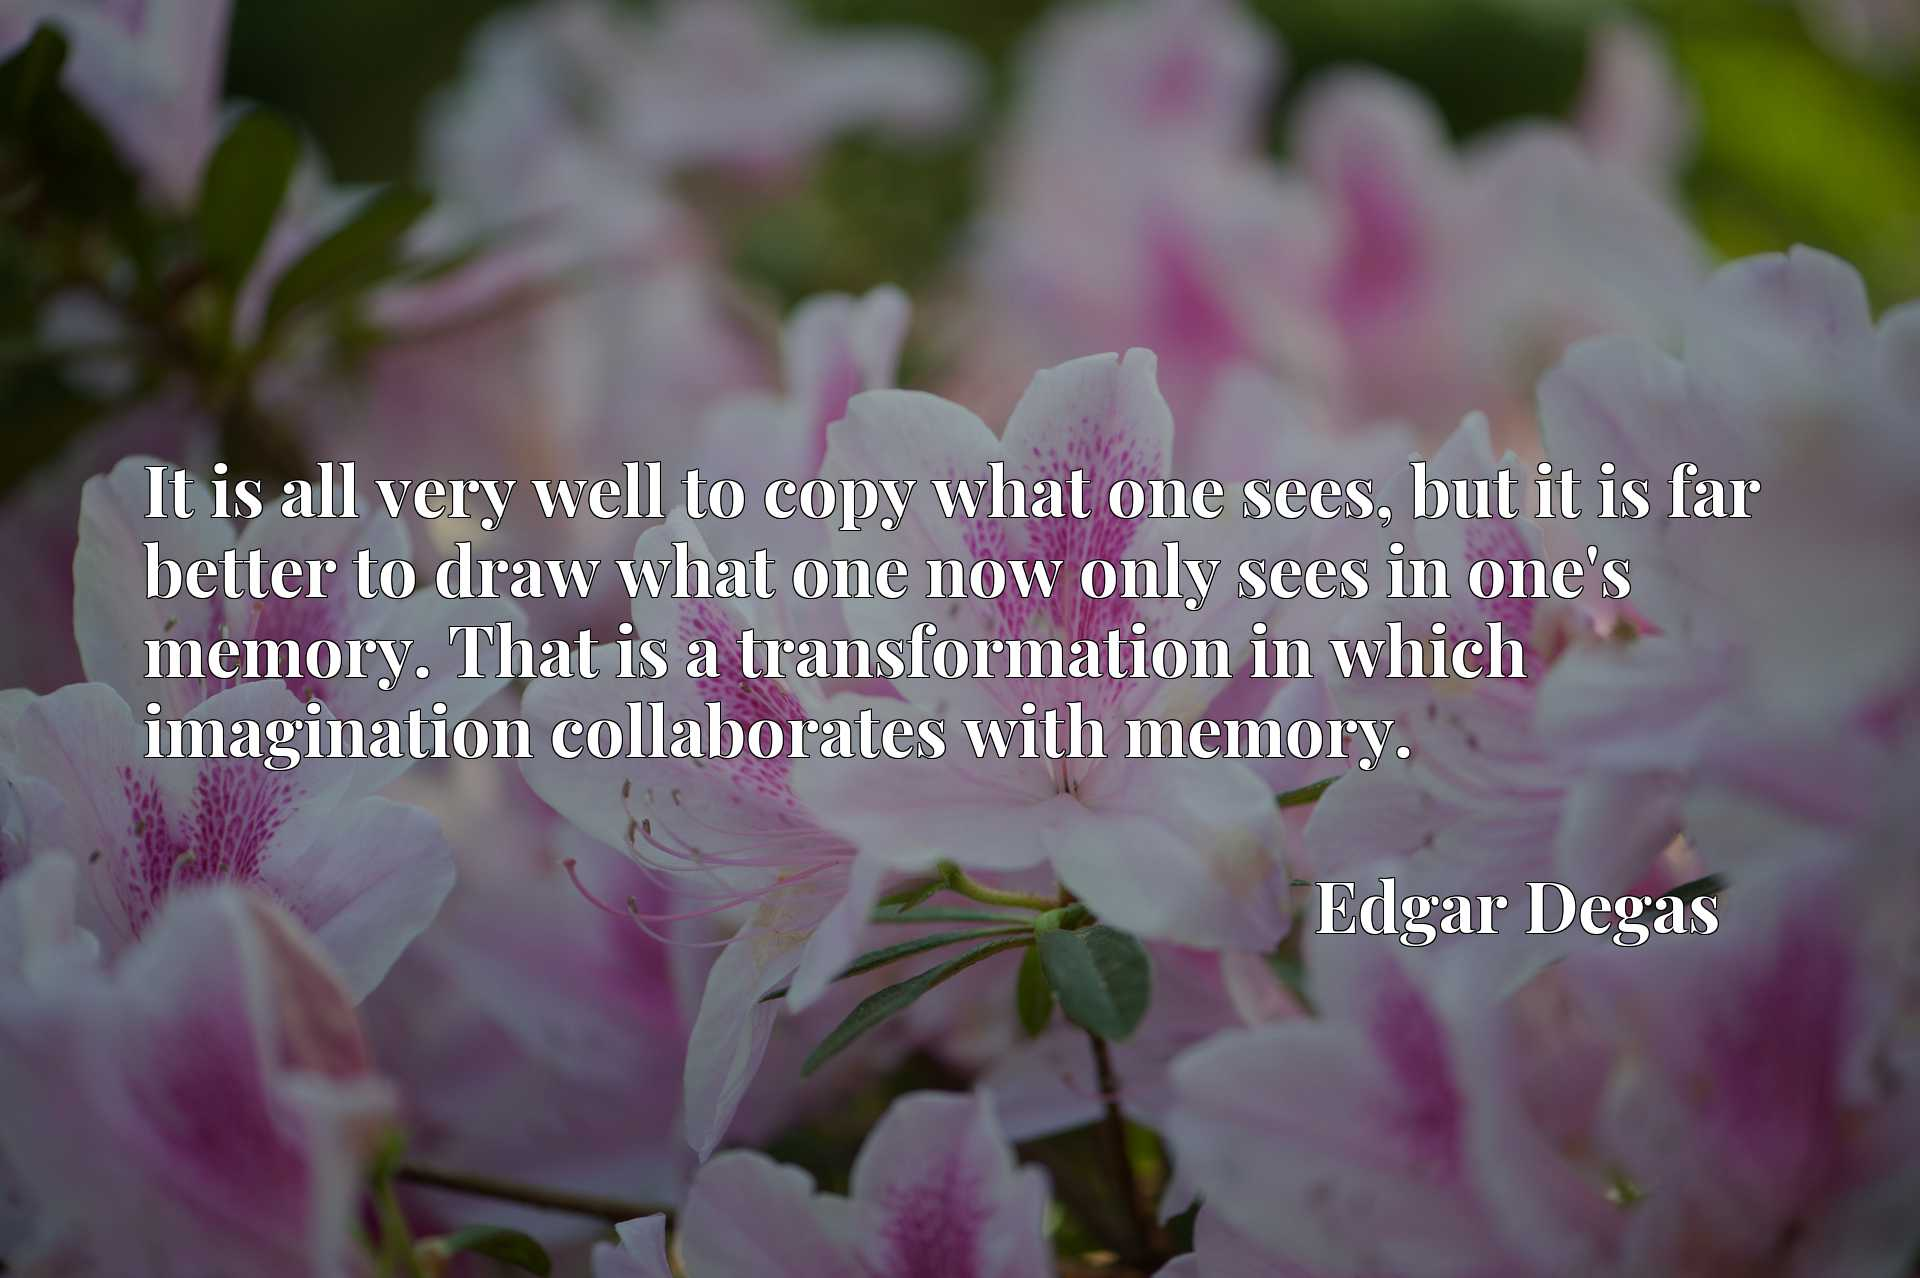 It is all very well to copy what one sees, but it is far better to draw what one now only sees in one's memory. That is a transformation in which imagination collaborates with memory.